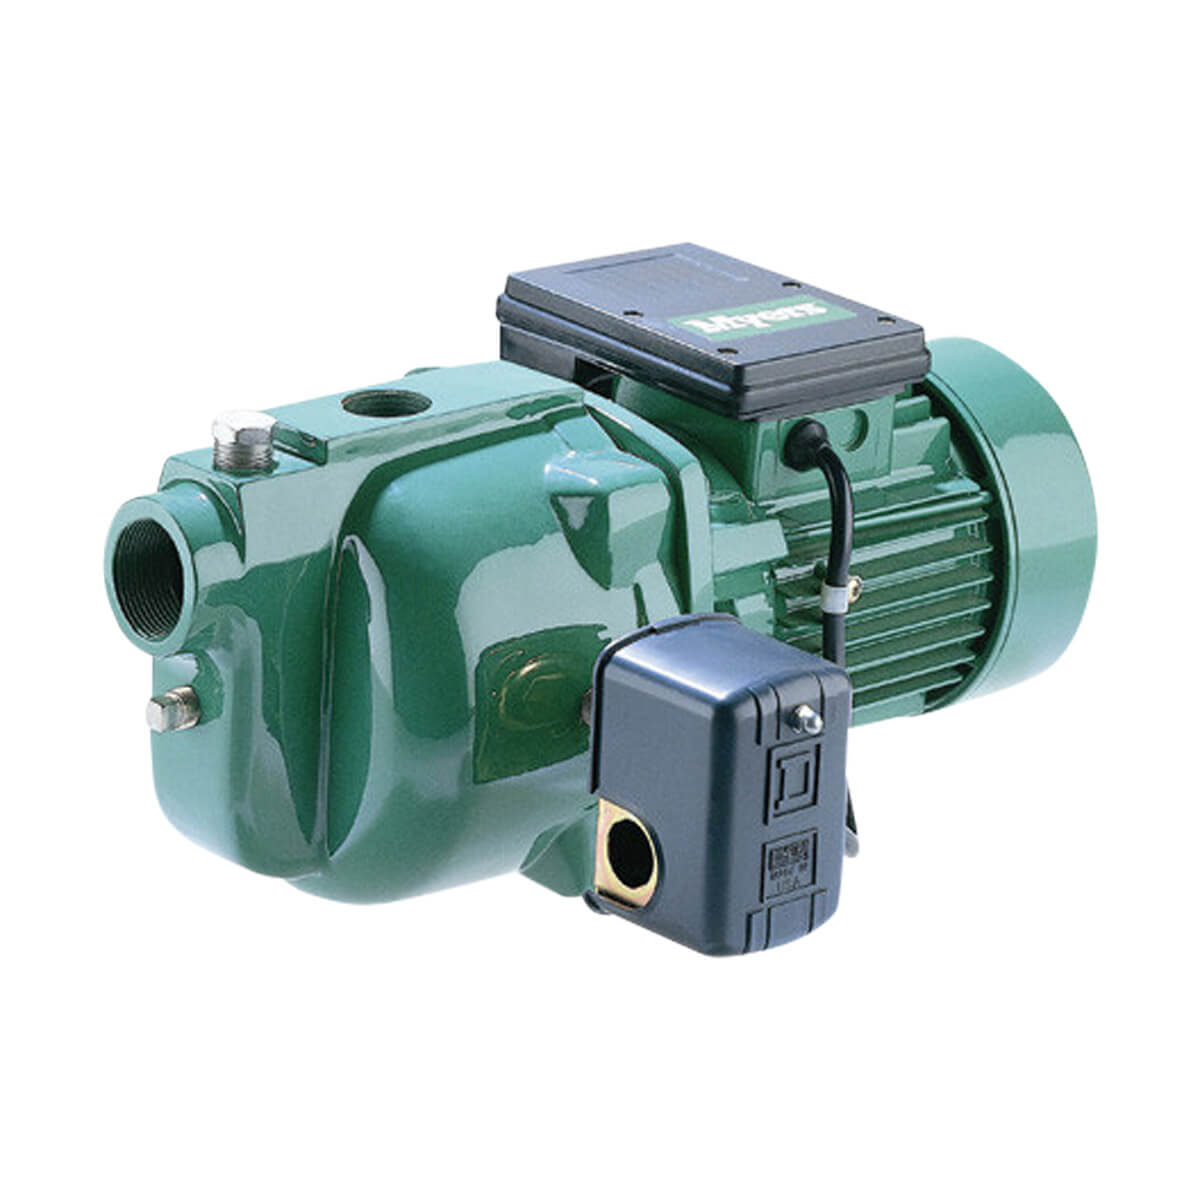 Myers 1 hp Shallow Well Jet Pump - QD100S